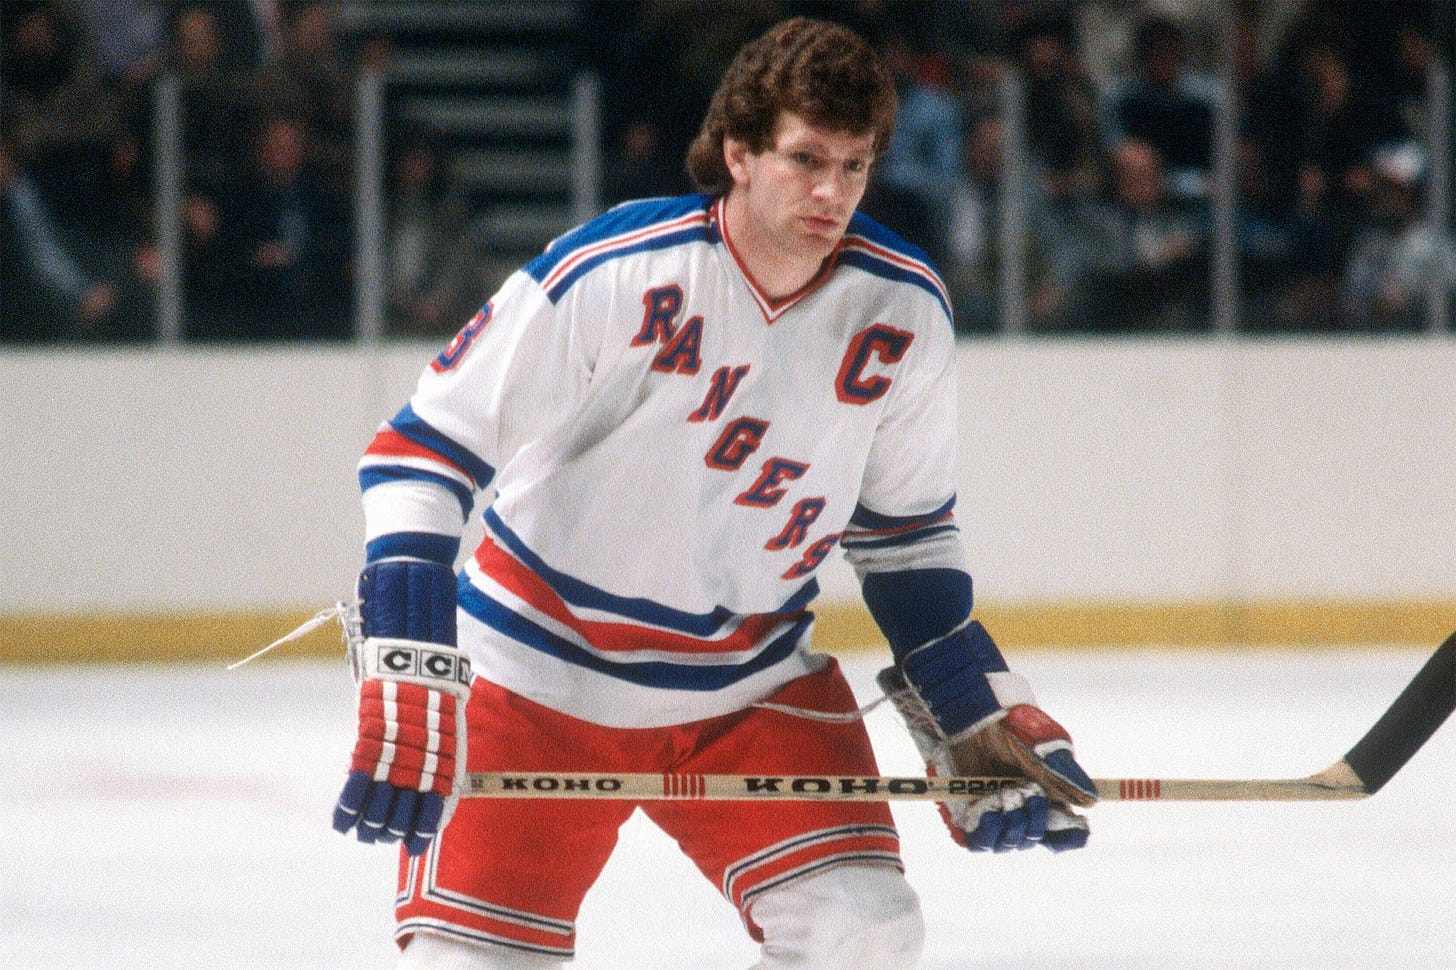 Son of former Rangers star Barry Beck stabbed to death